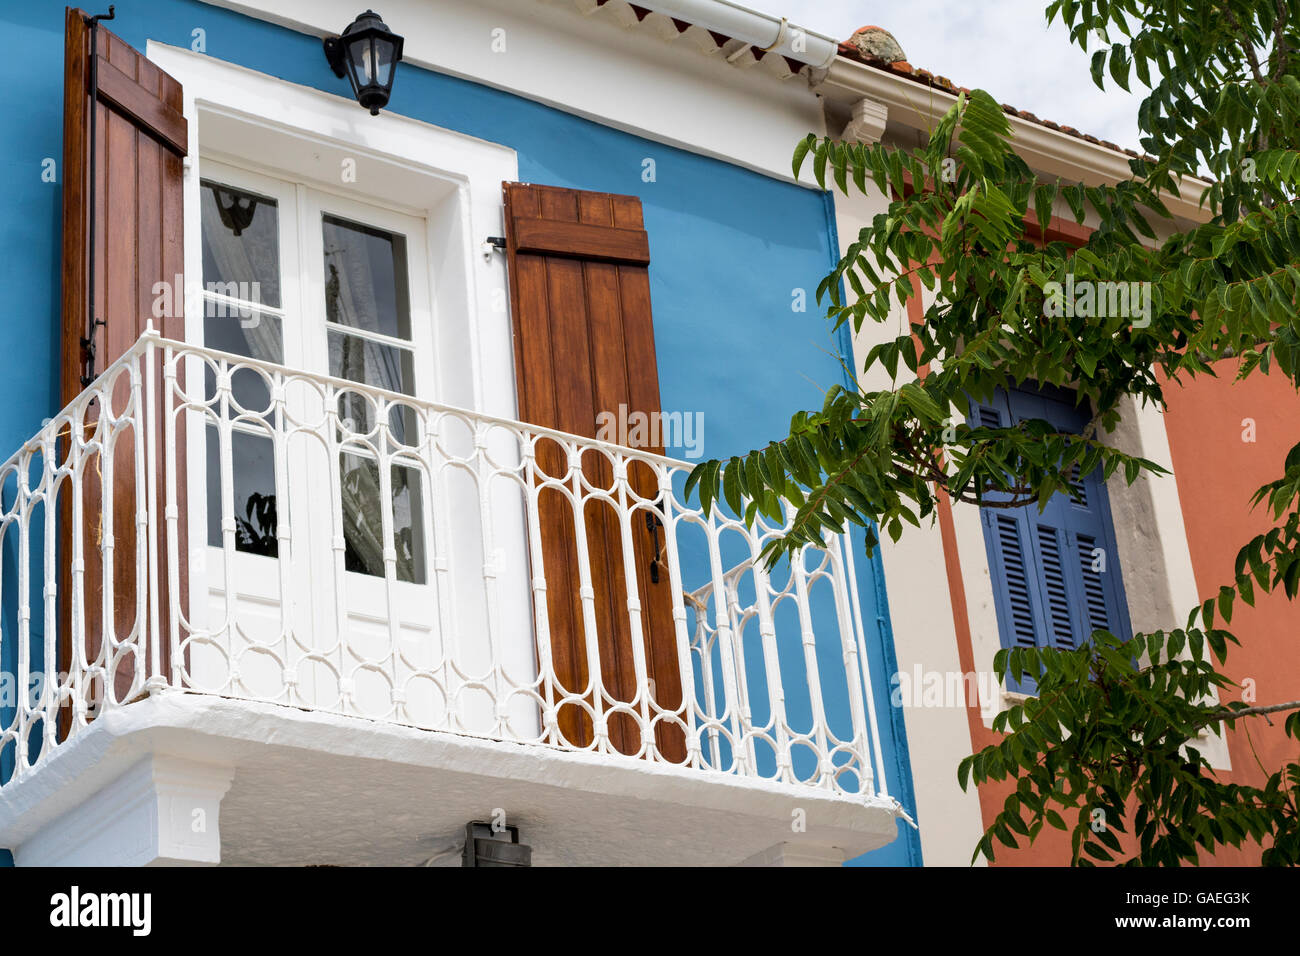 White Wrought Iron Balcony French Windows And Wooden